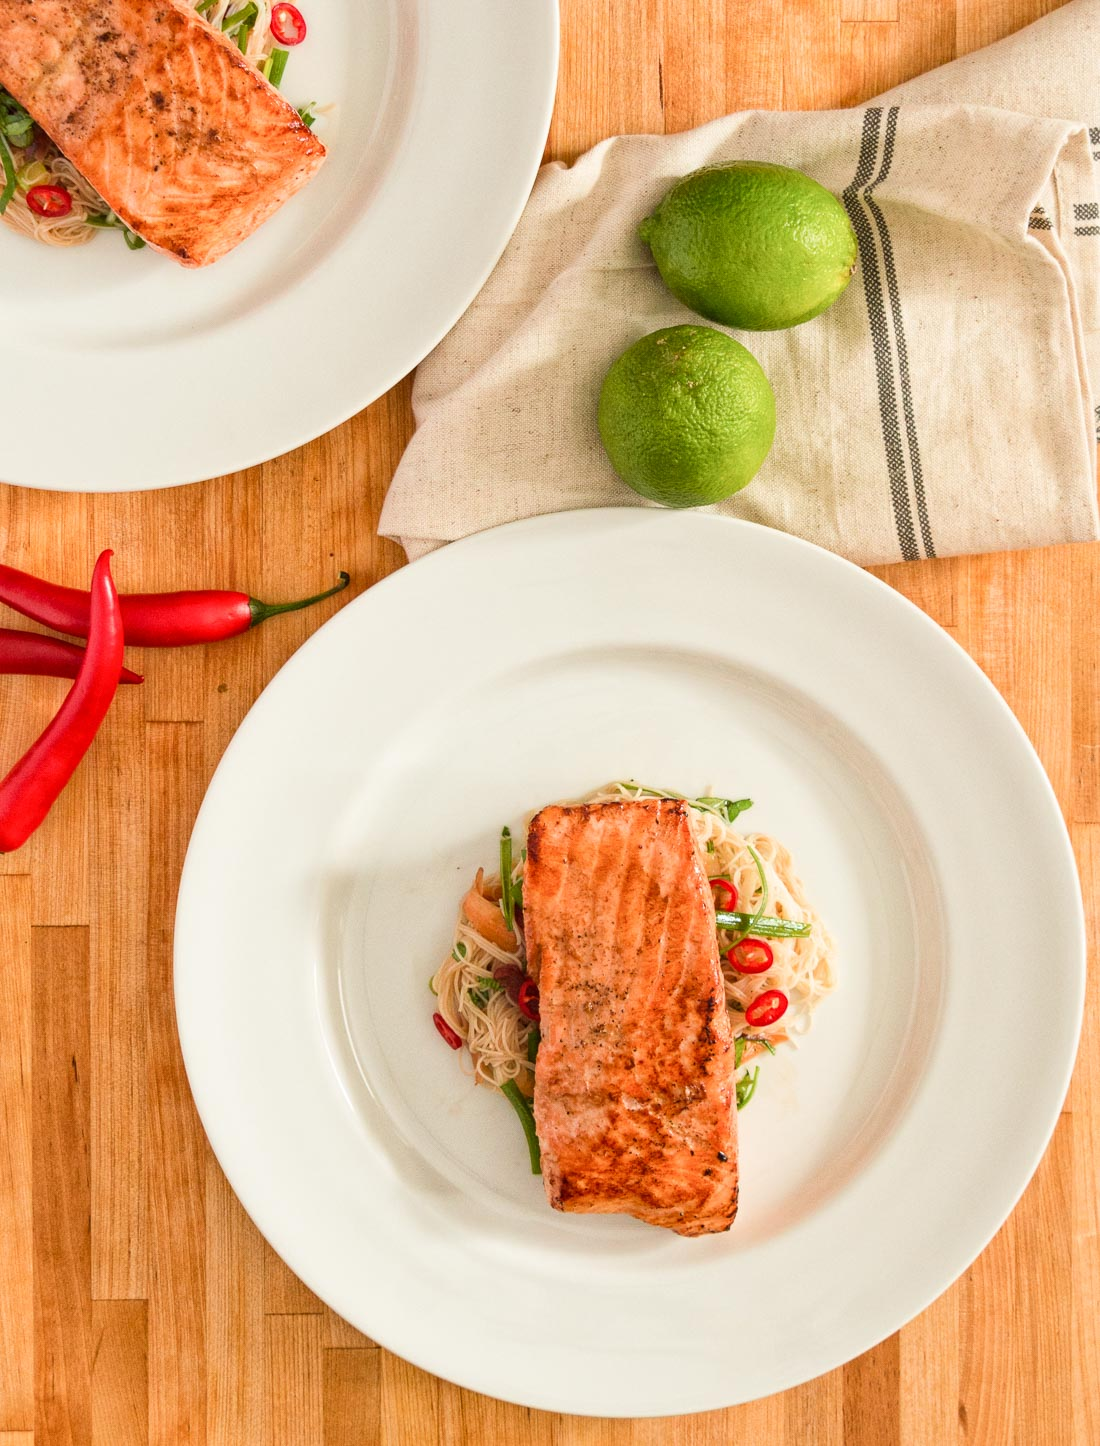 Salmon with rice noodle salad makes a great weeknight meal.